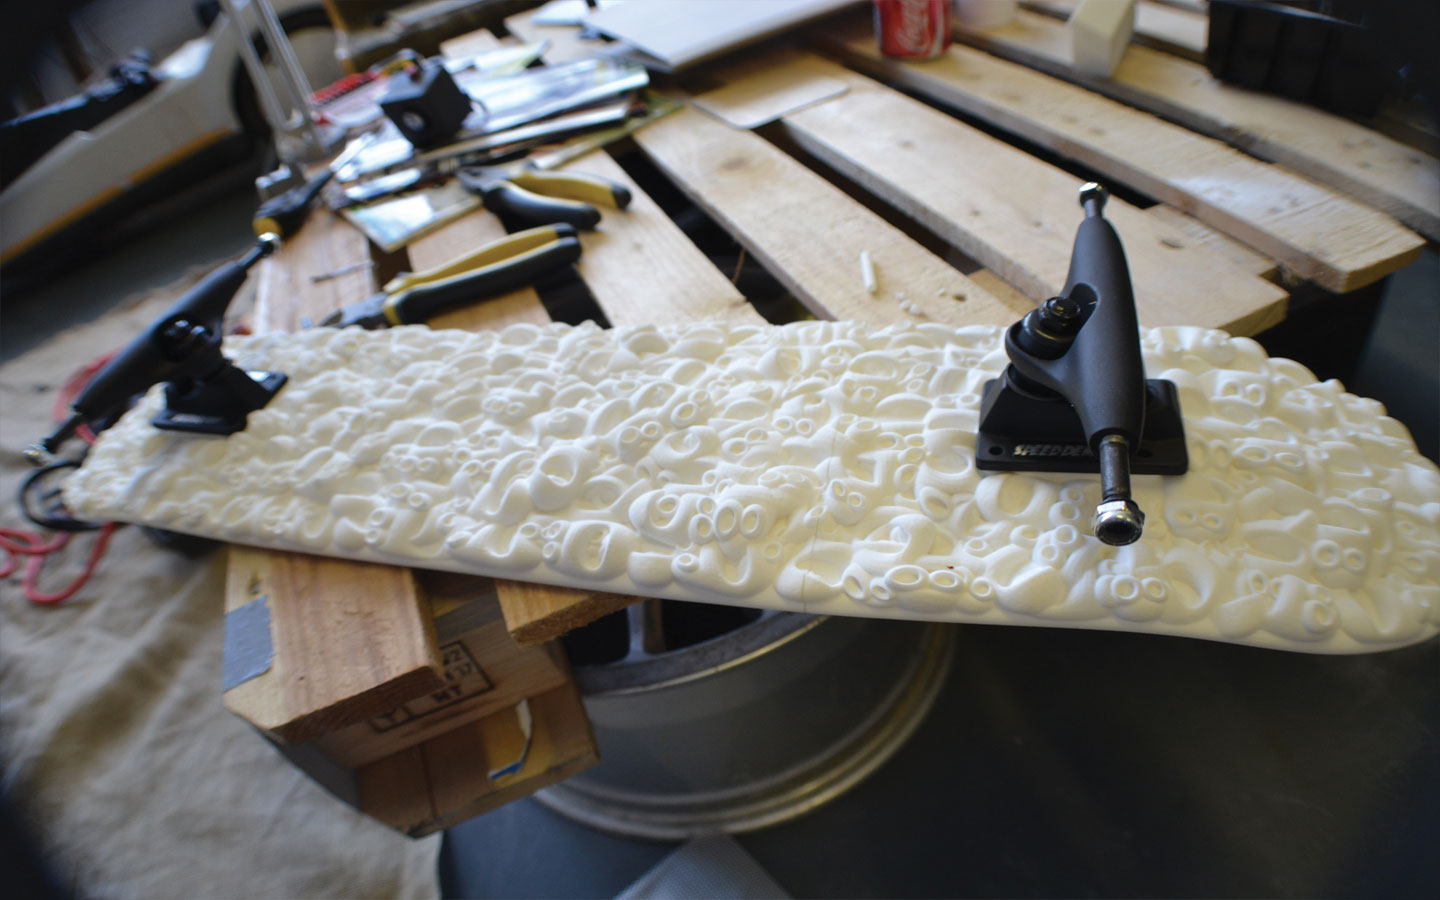 Printed Skateboards Skateboard-3d-printed